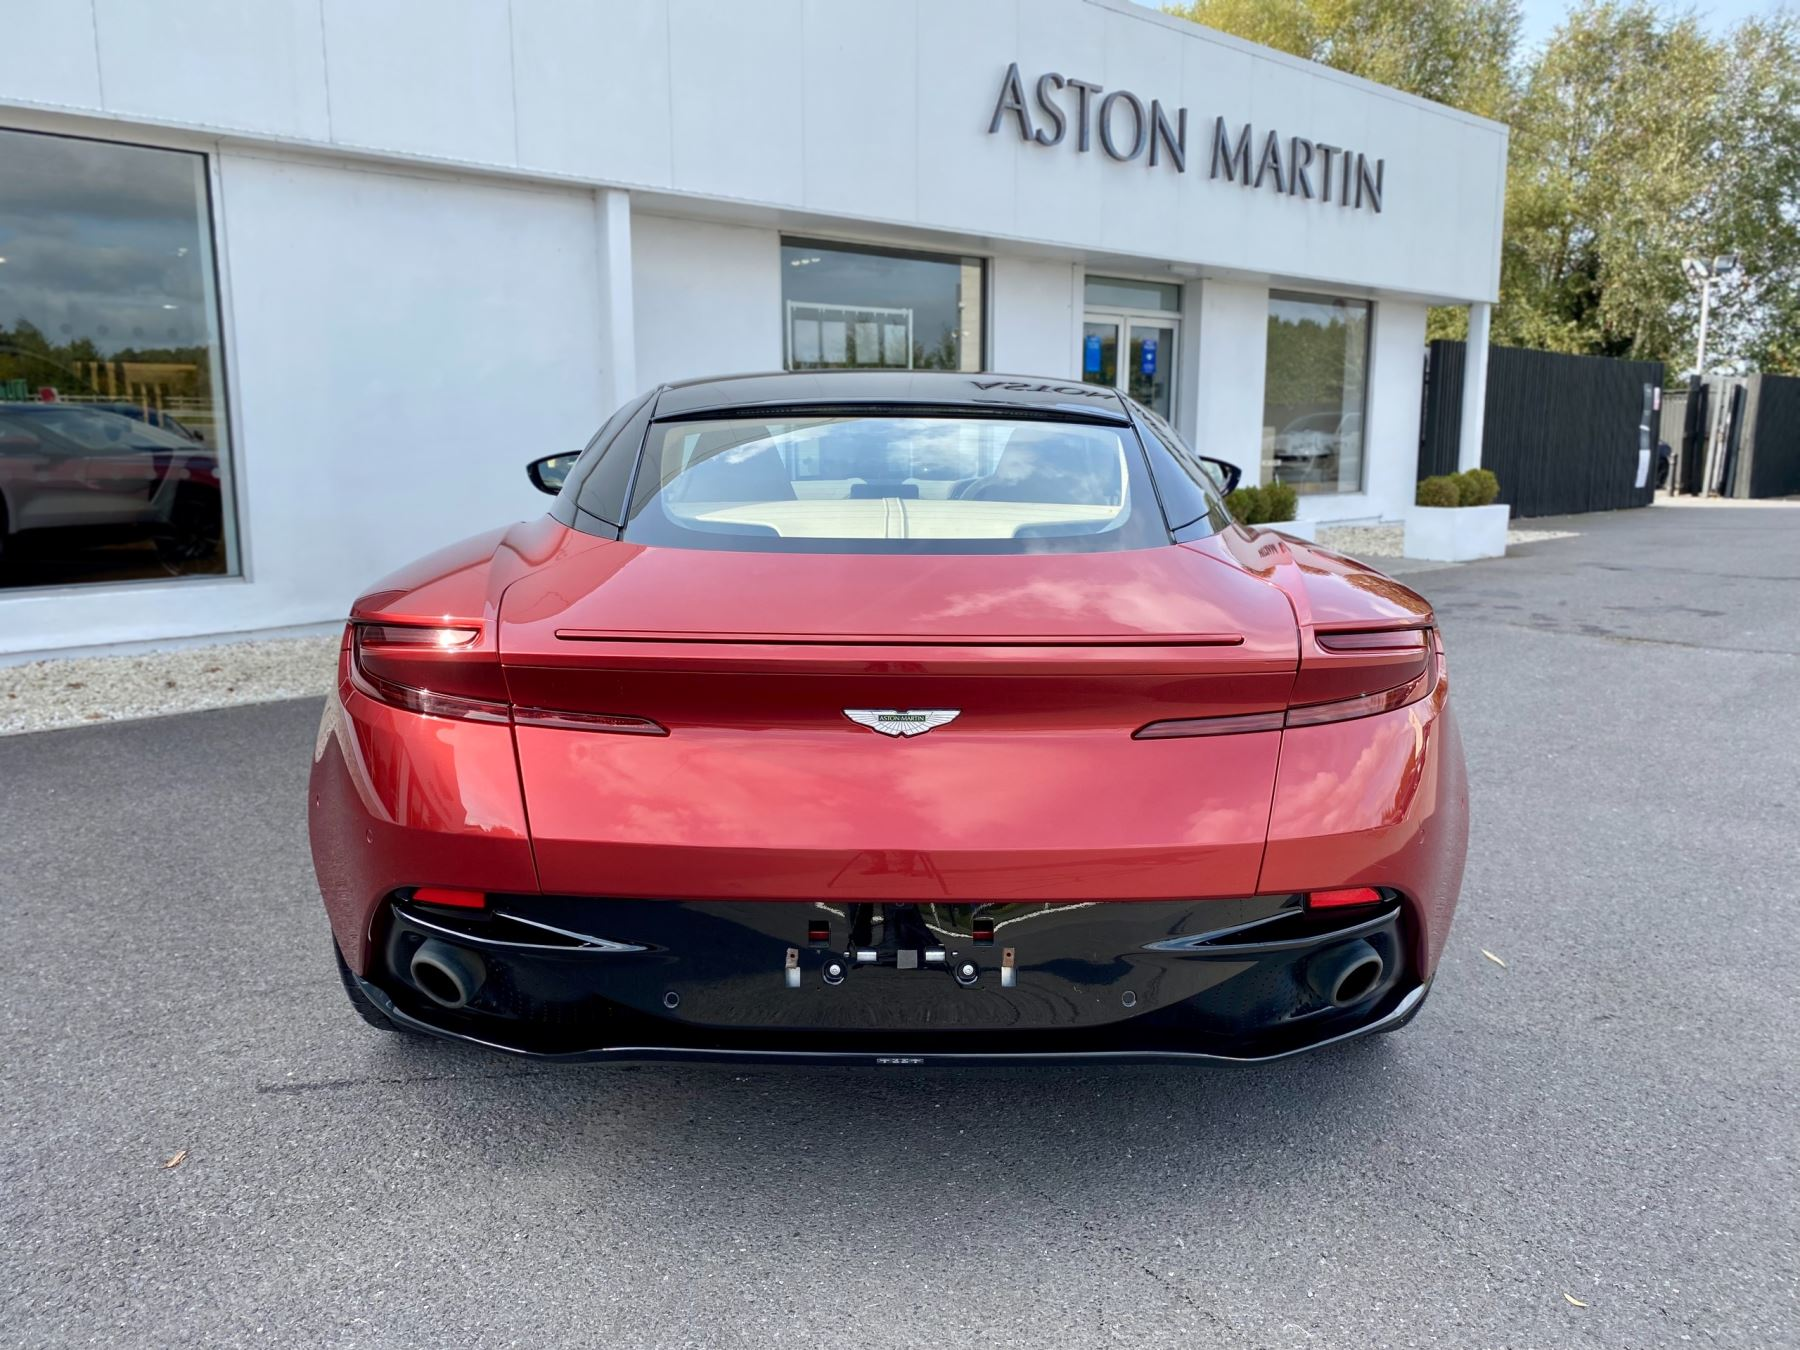 Aston Martin DB11 V12 Launch Edition Coupe. Bang & Olufsen Beosound Audio. Black brake calipers. Ventilated Seats image 6